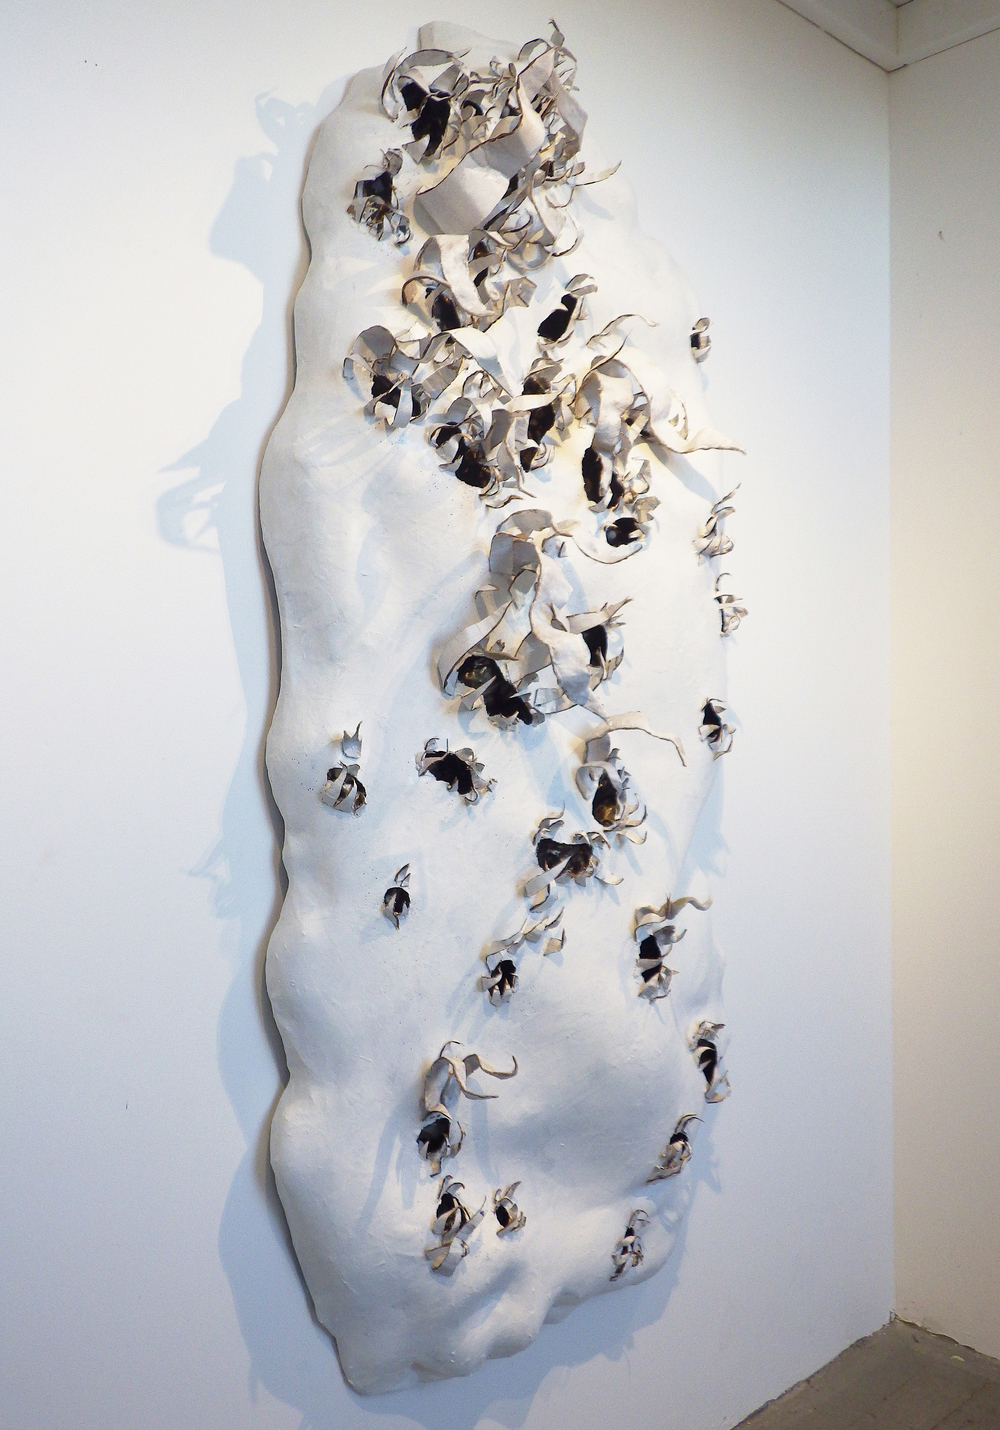 ''Pearl''. Installation view